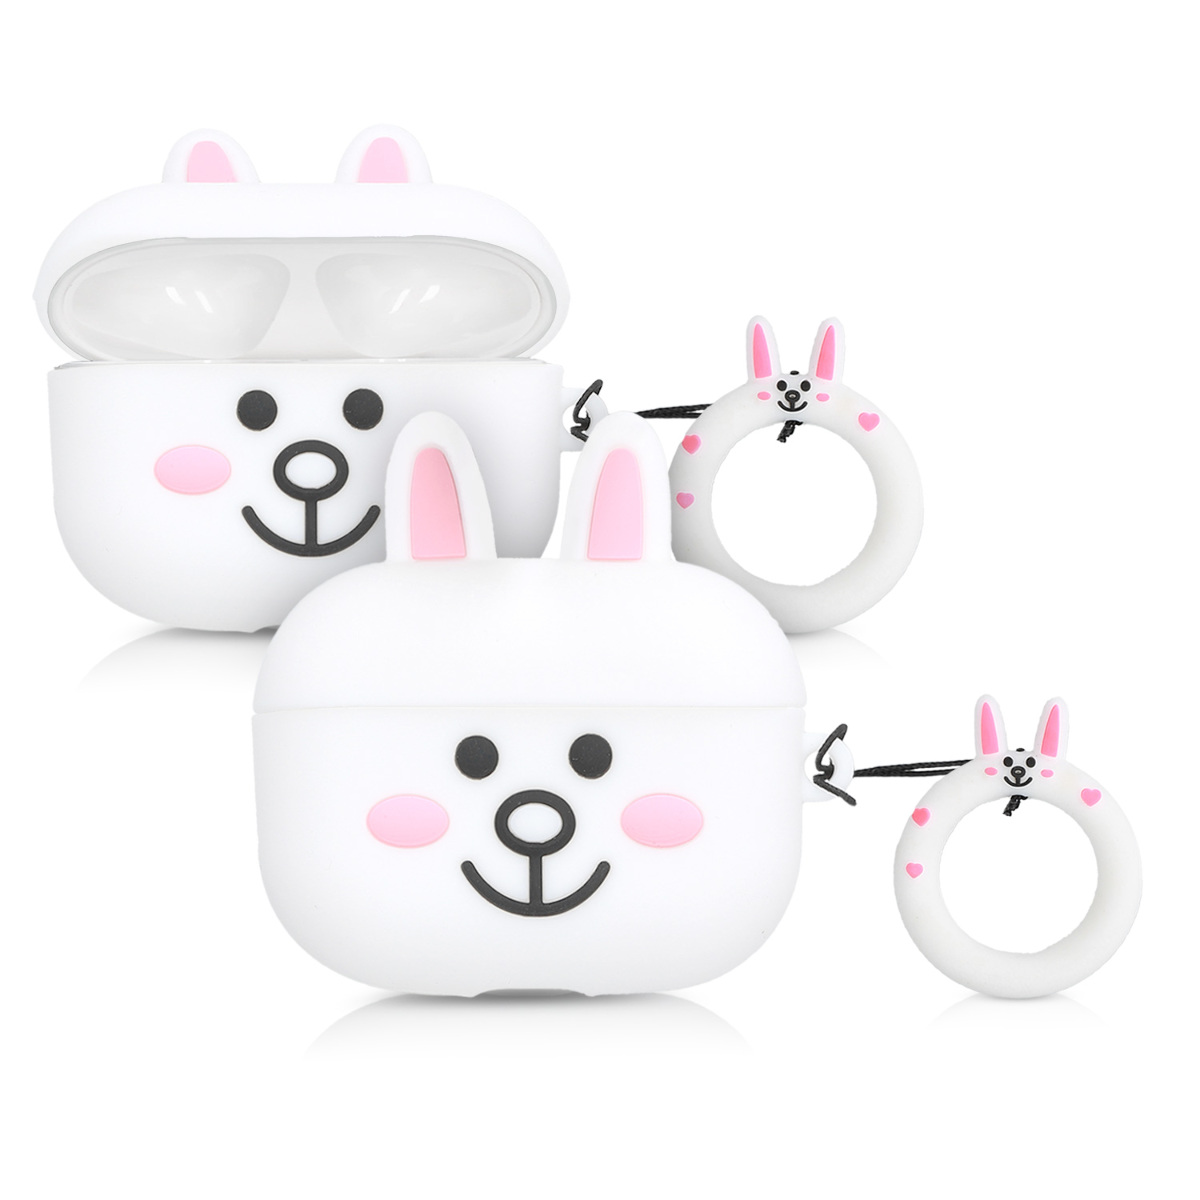 KW Θήκη Σιλικόνης για AirPods Pro - Bunny Design Black / Light Pink / White (51055.03)